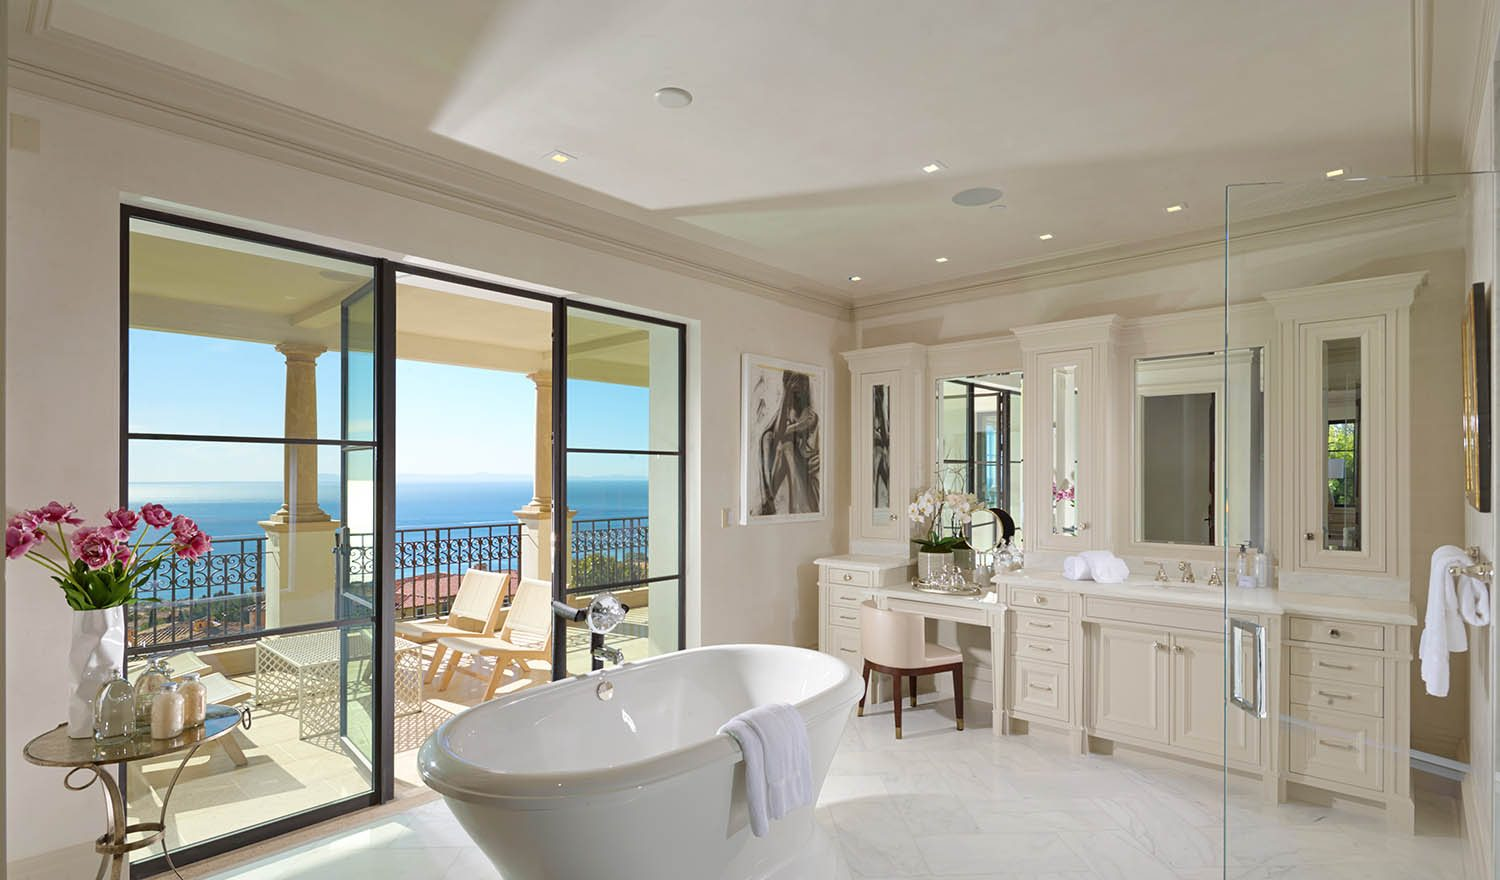 Cove Complete Bathroom Suite: Extraordinary Home Of The Week: Coastal Contemporary In